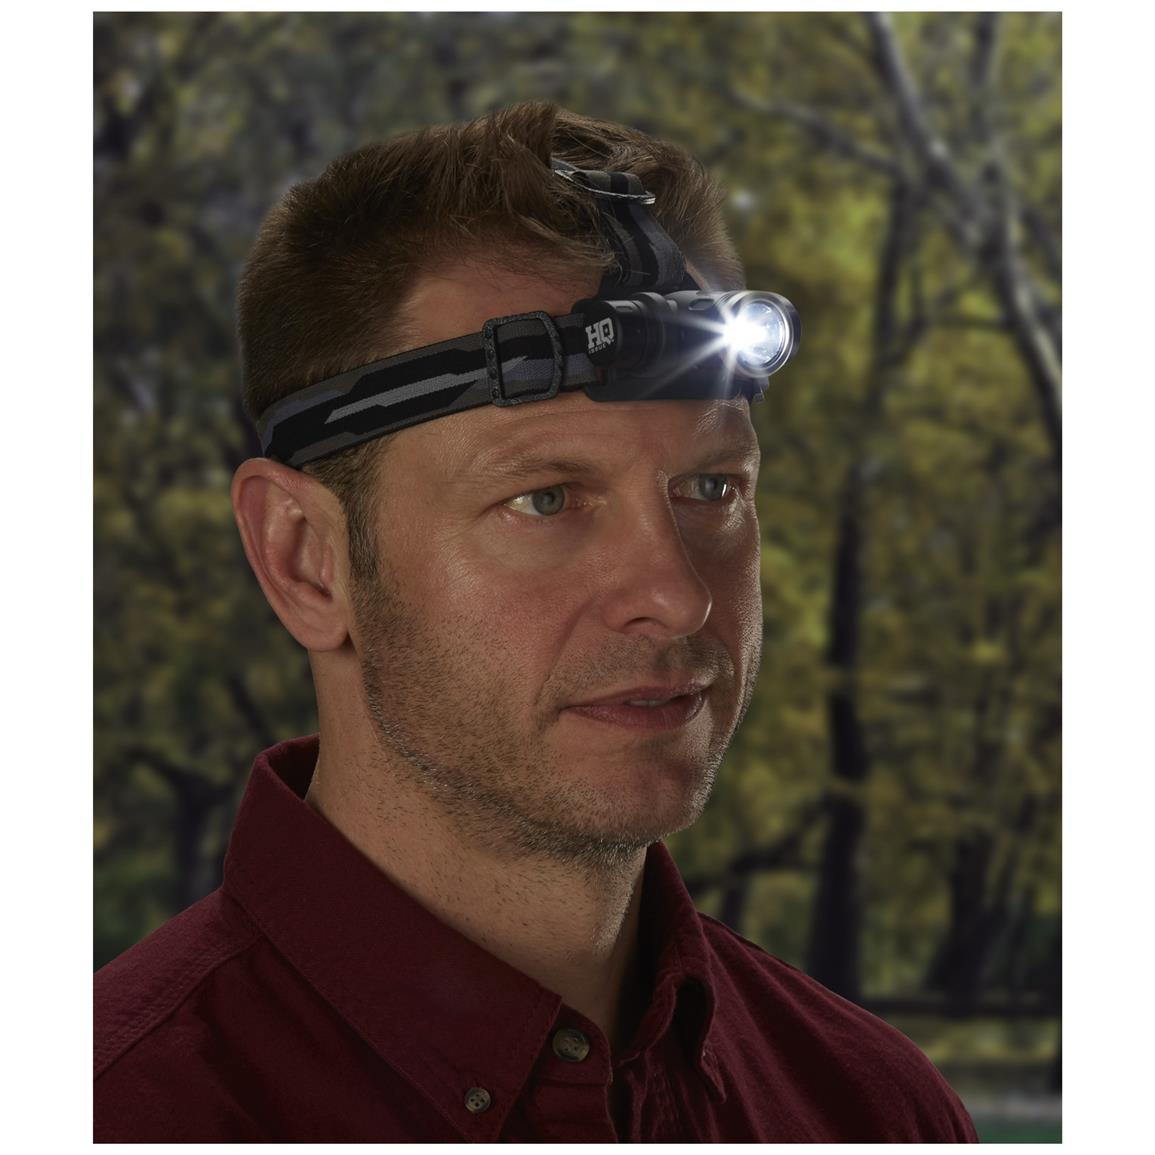 Adjustable headband for a comfortable fit